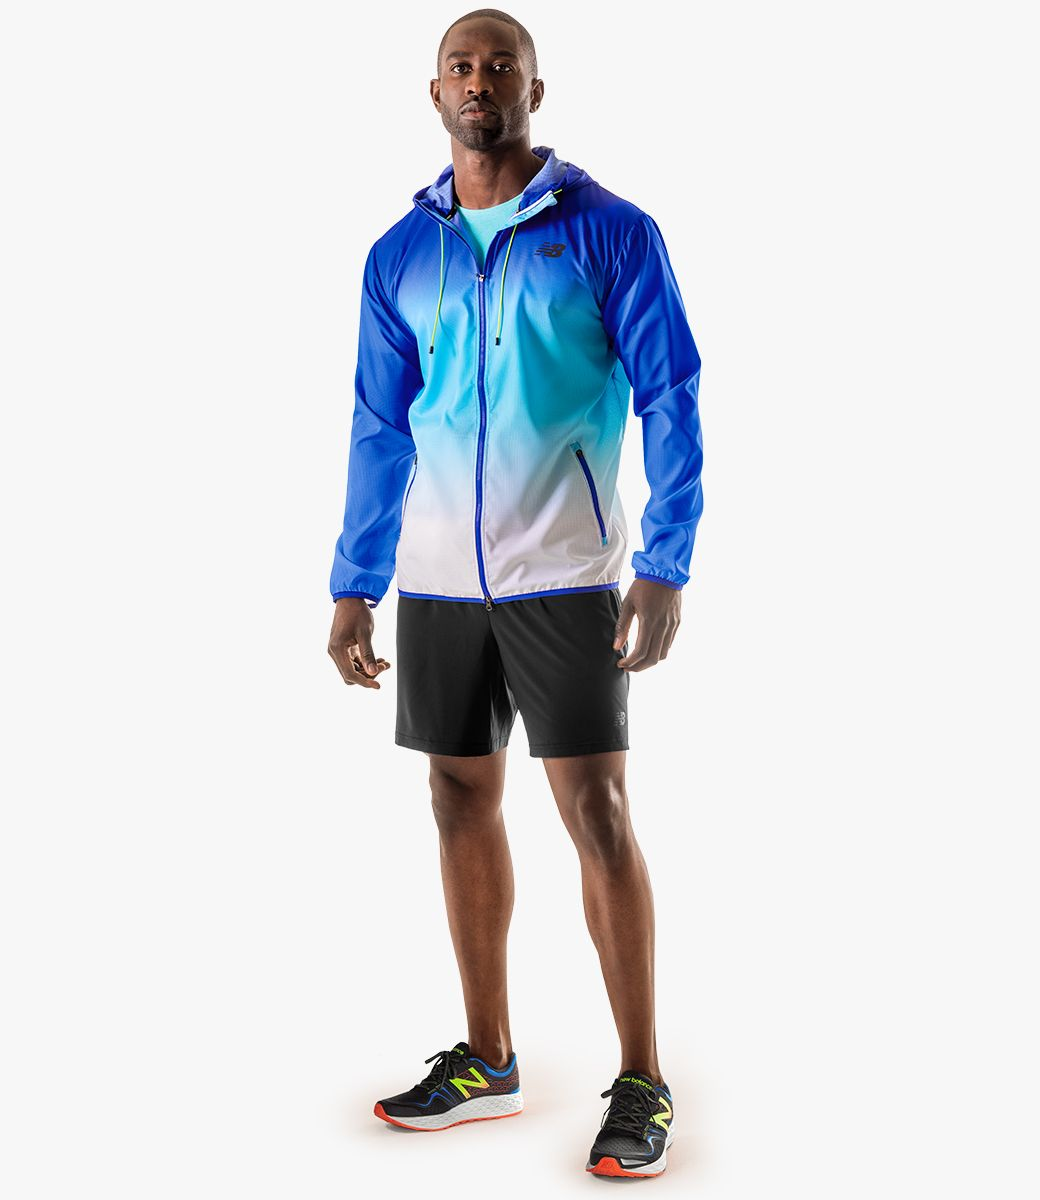 New Balance Mens Vongo and M4M Seamless Apparel,